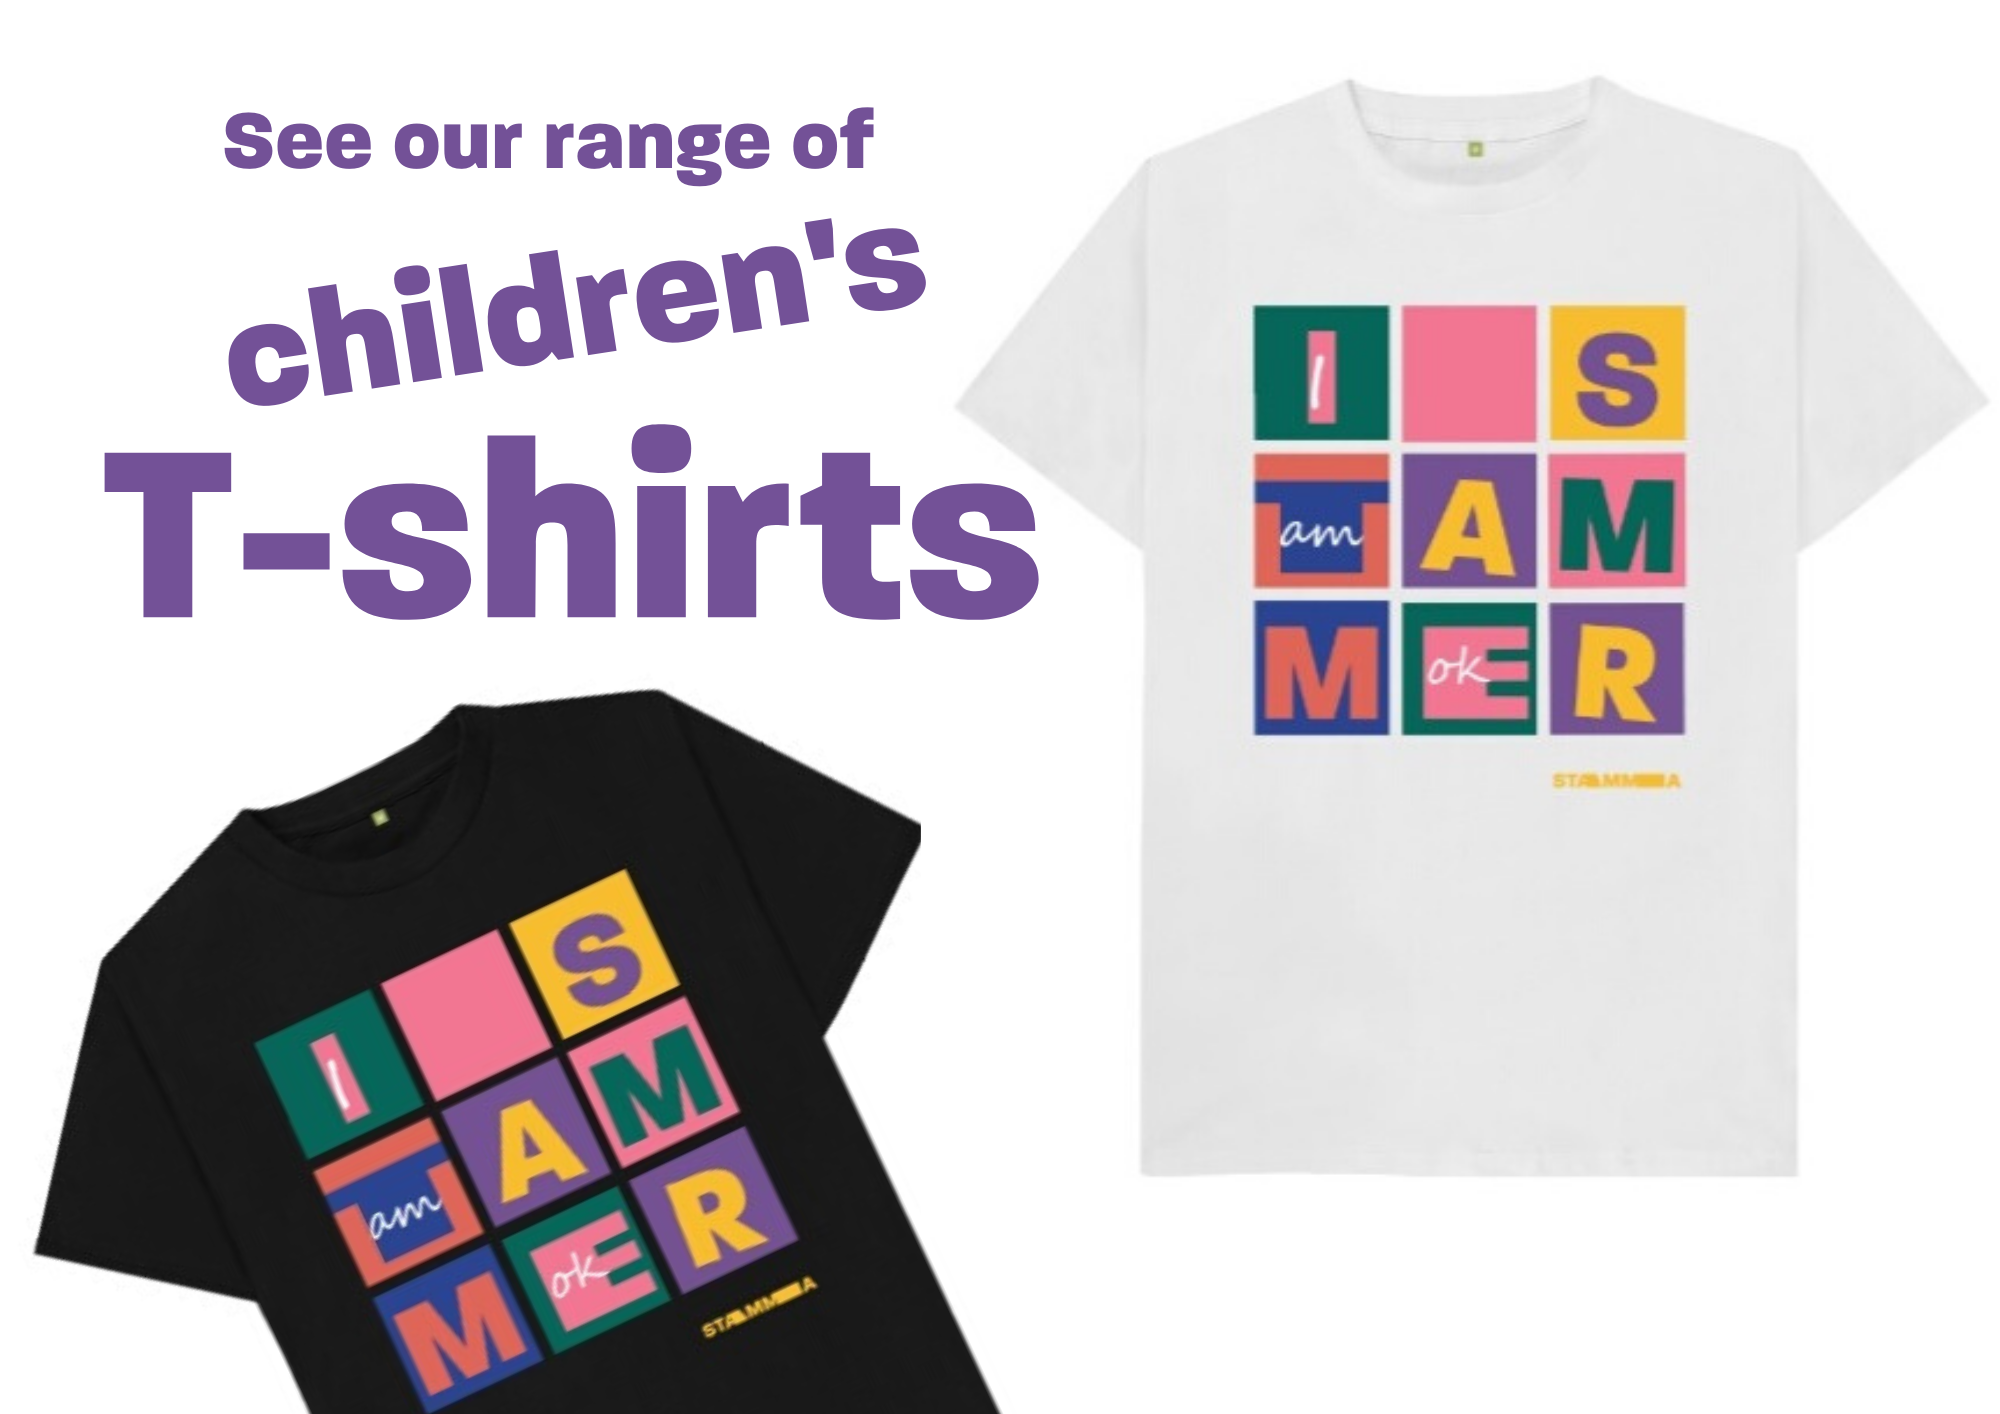 Children's t-shirts for sale